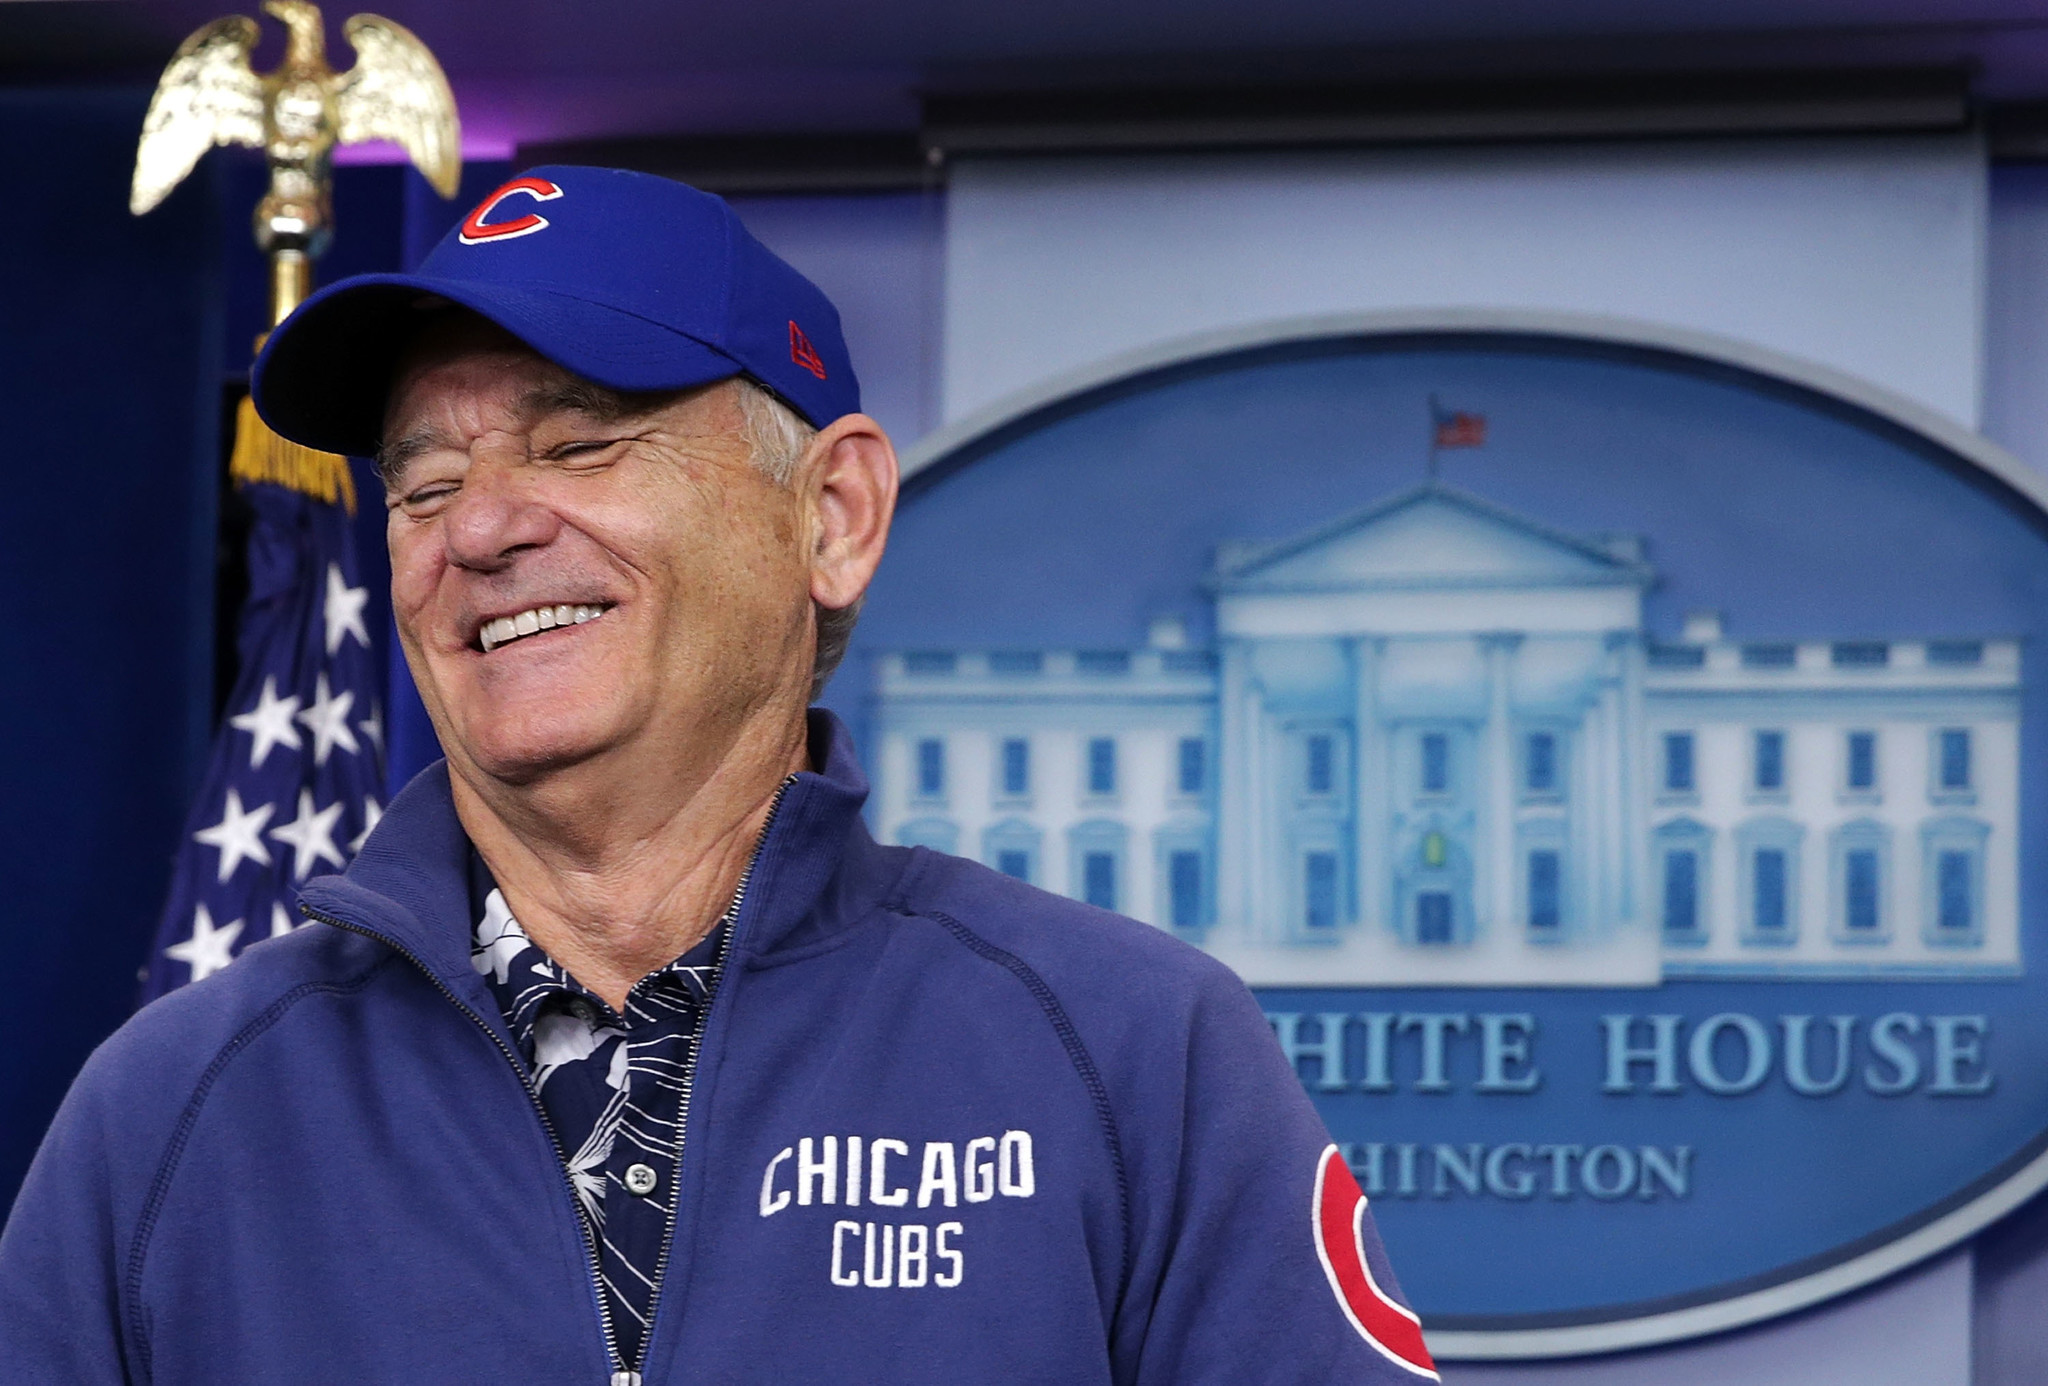 Bill Murray Wearing A Cubs Hat Crashes White House Press